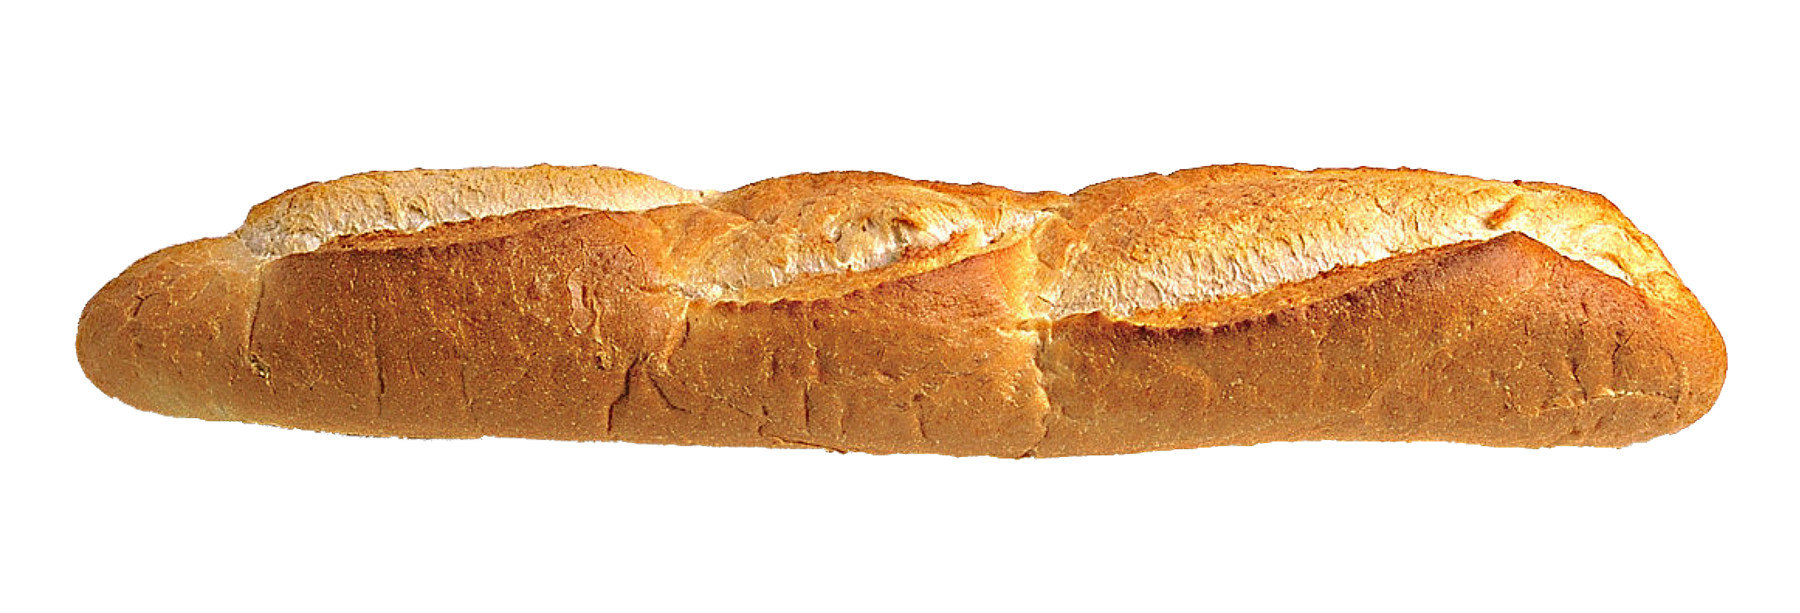 royalty free stock Transparent bread loave. Long loaf png image